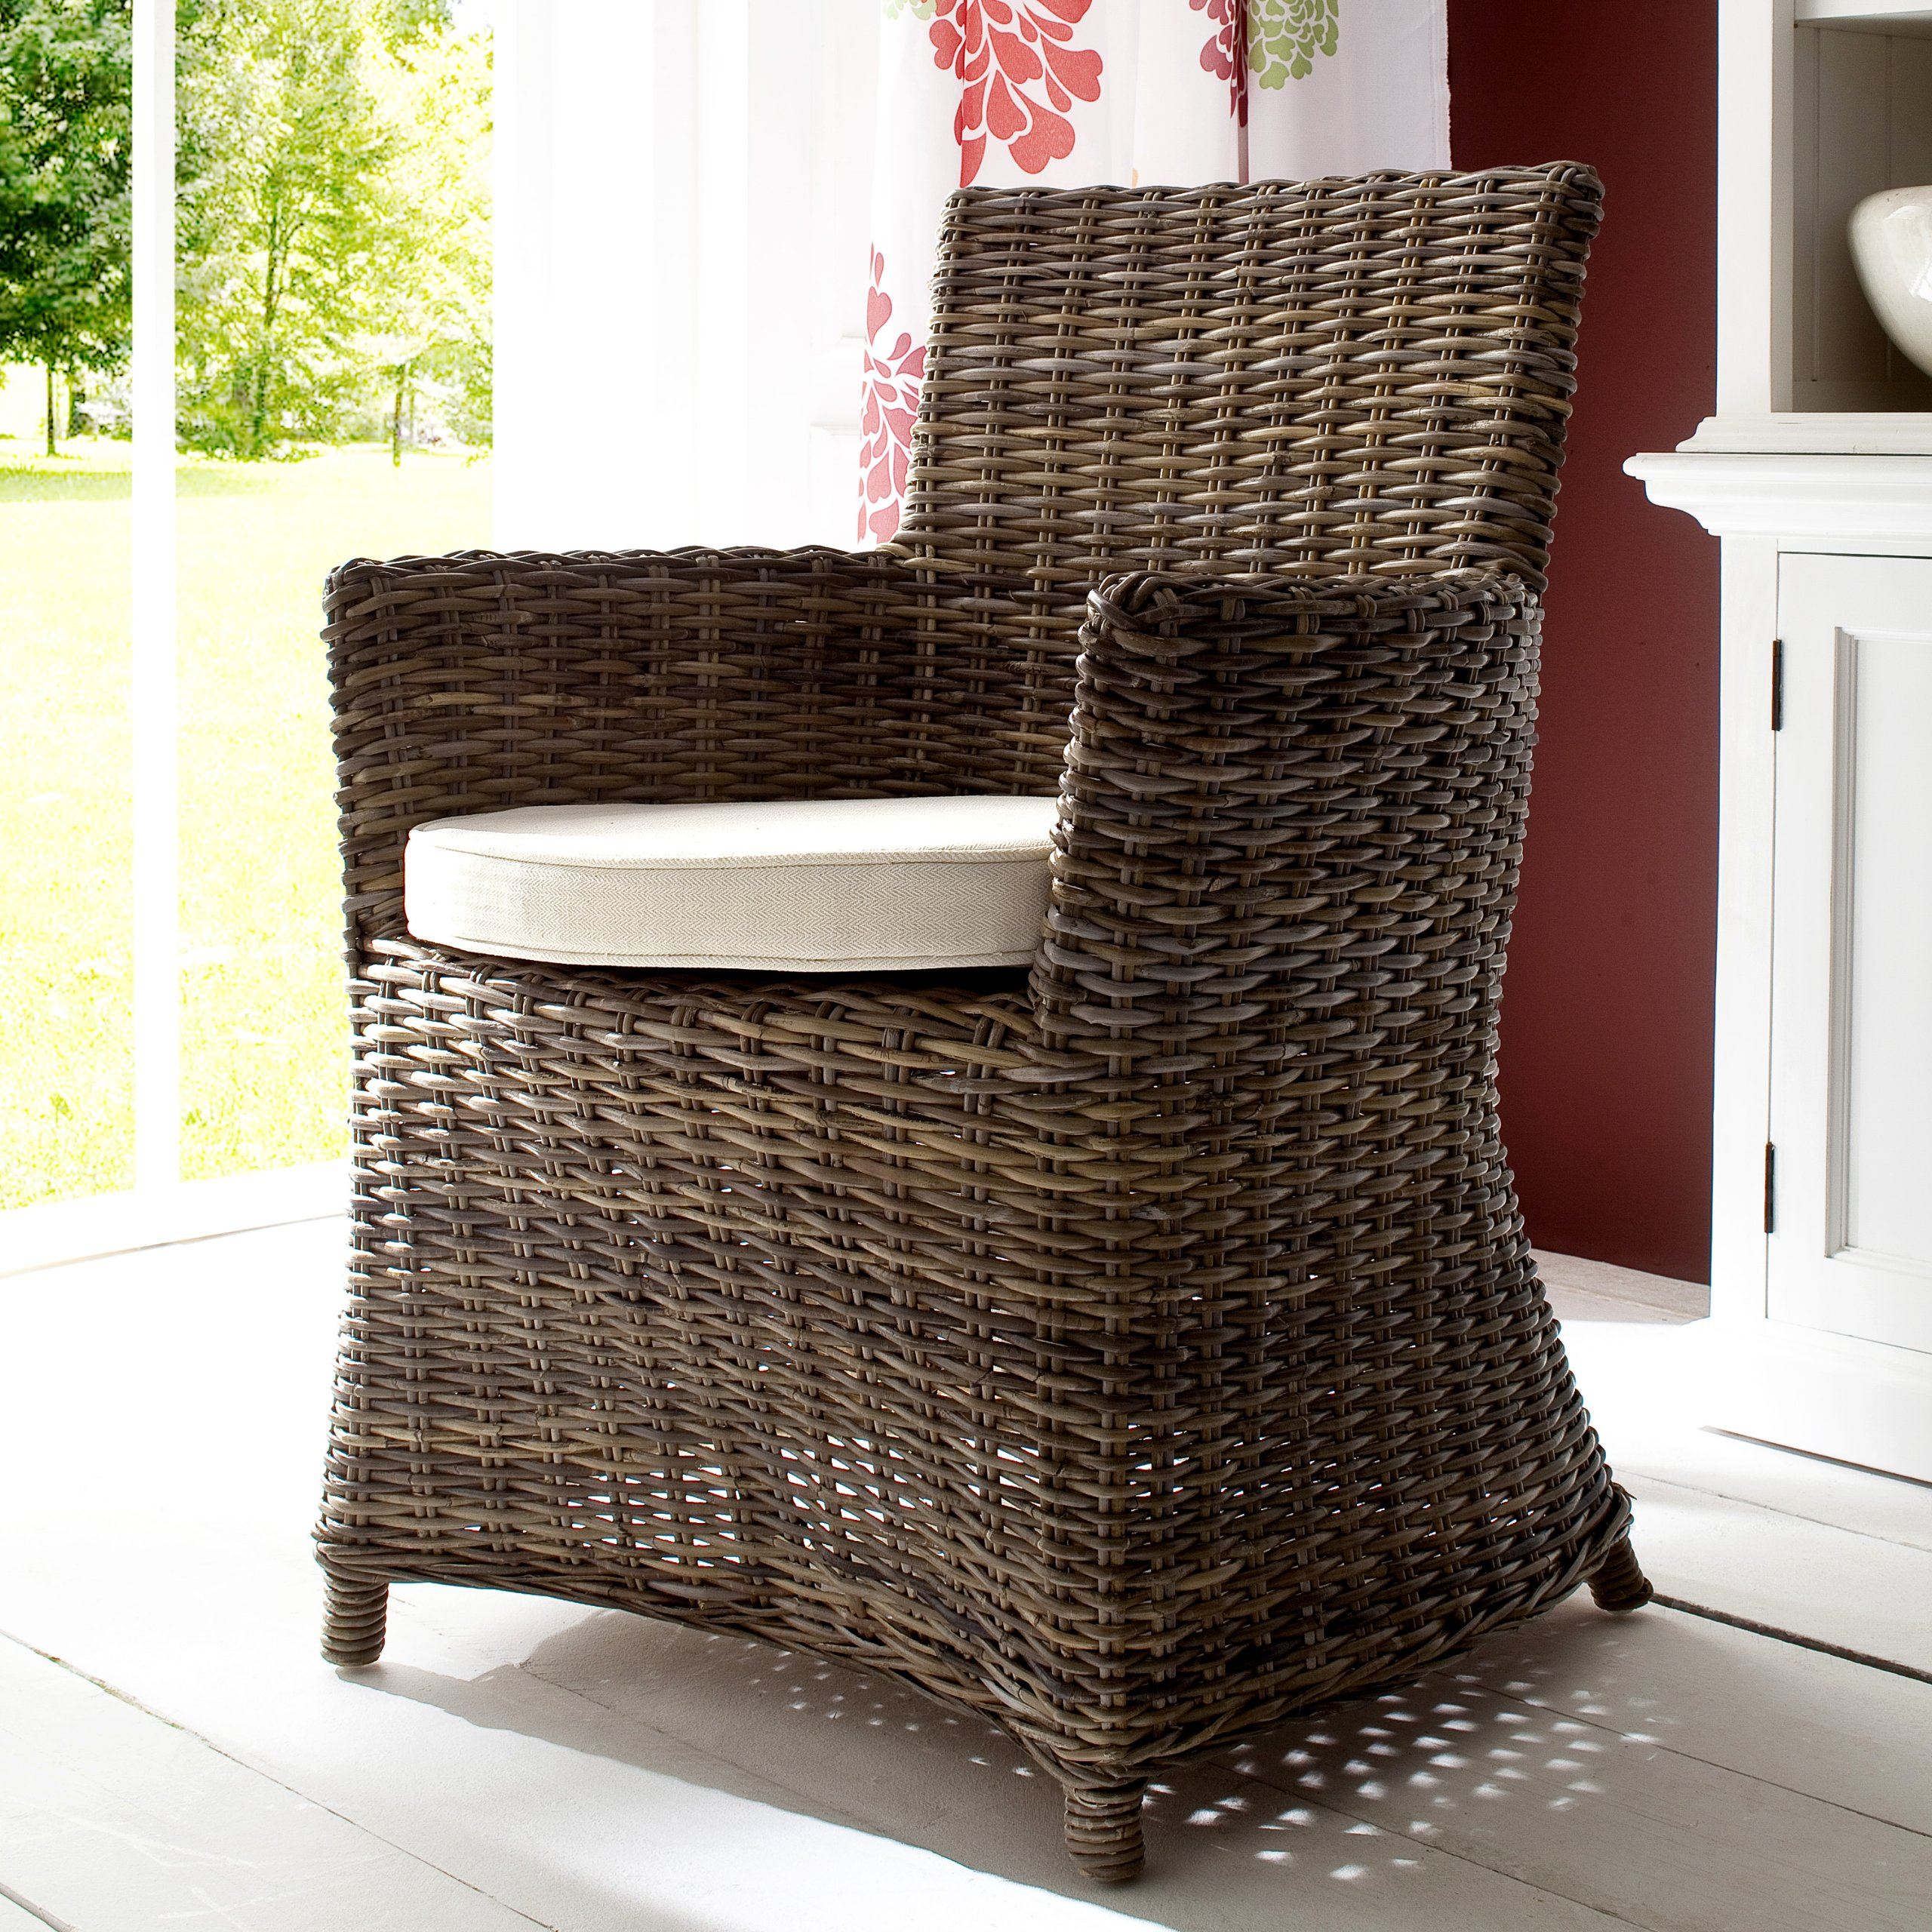 Infinita Wickerworks Natural Rattan Bishop Chair